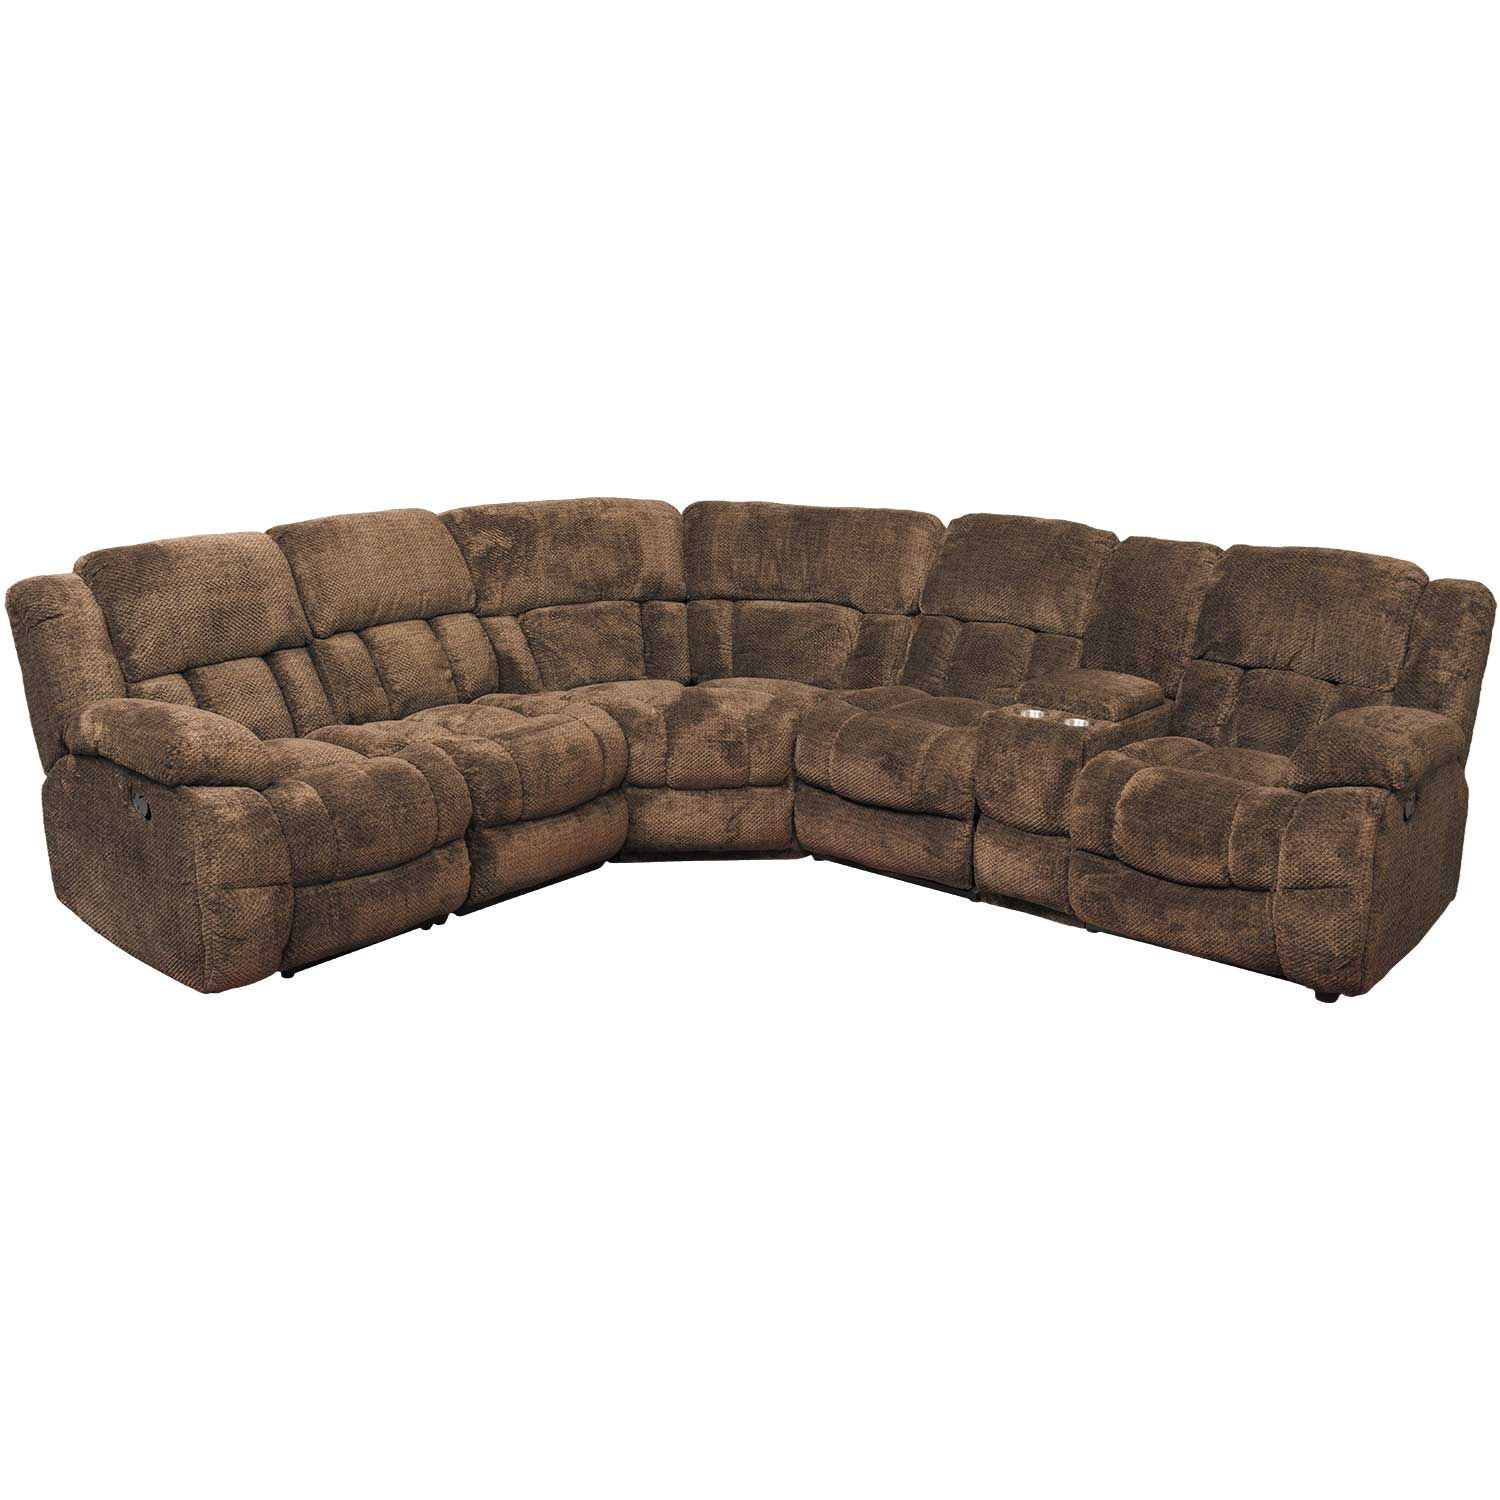 Picture of Eldon 6 Piece Reclining Sectional